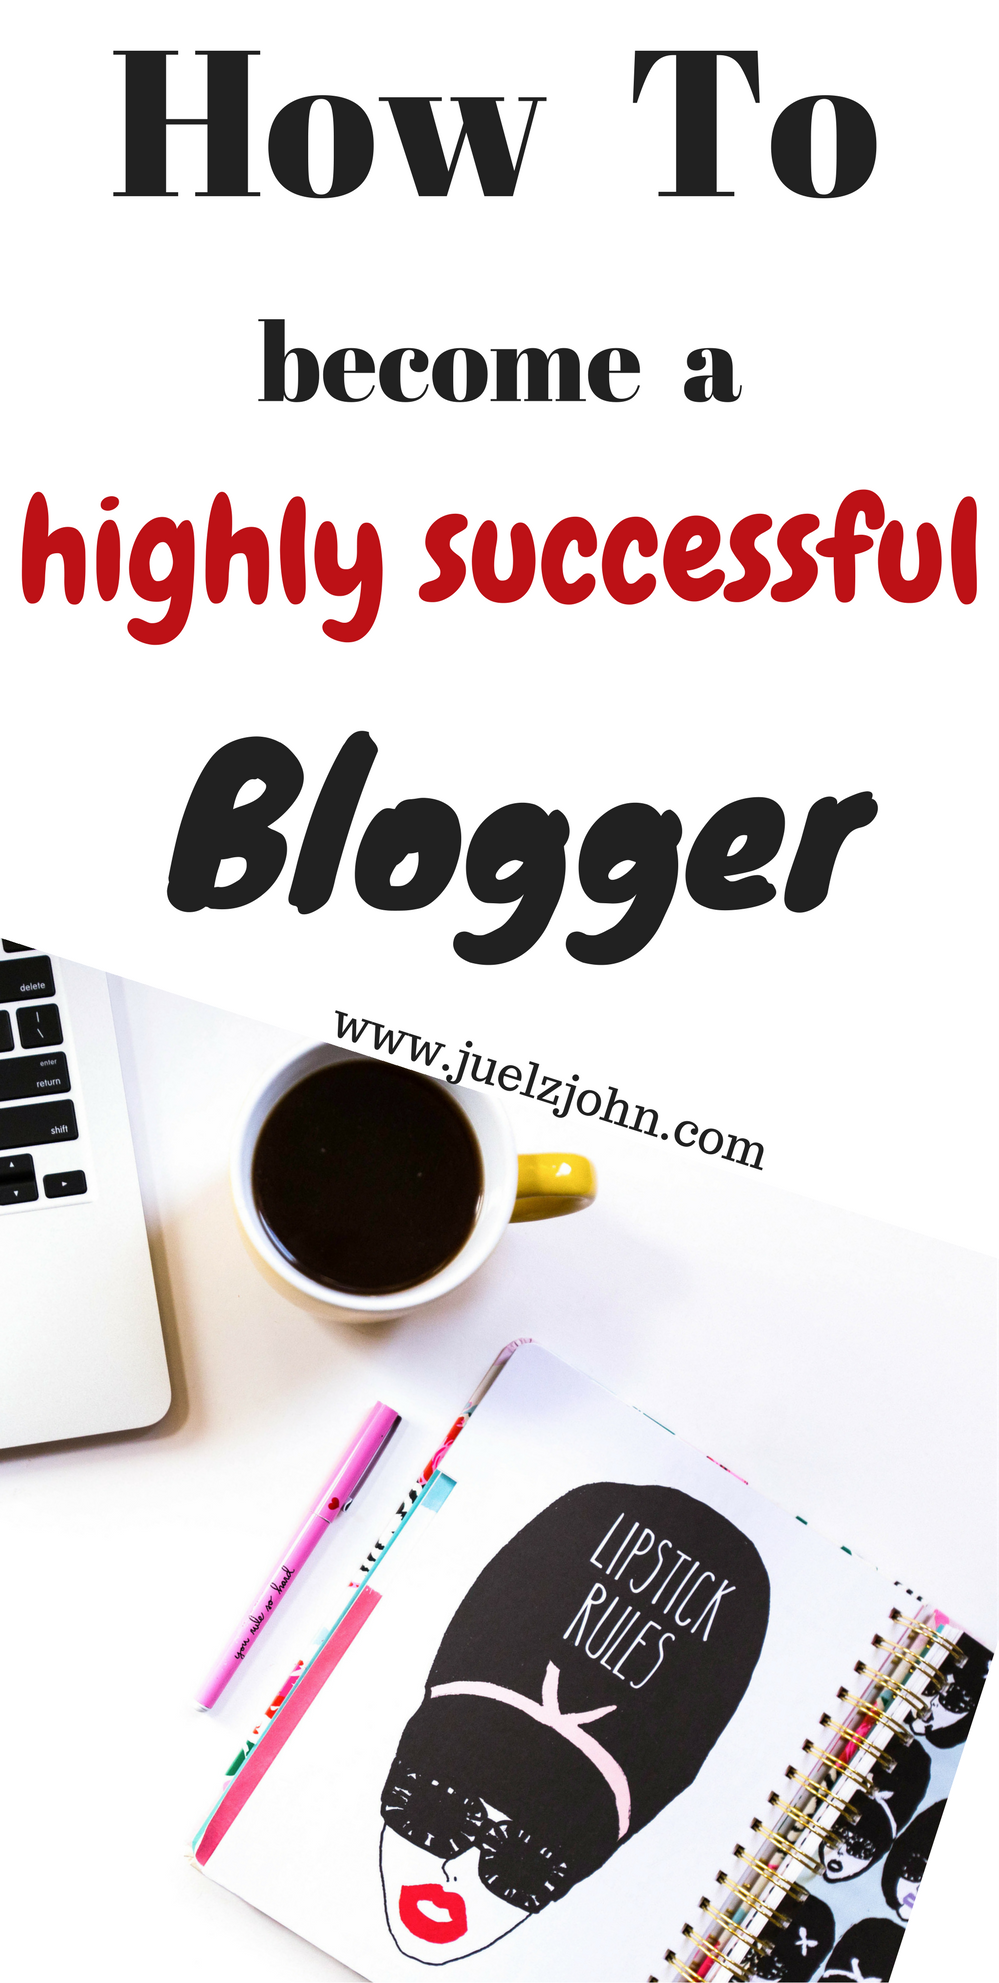 How to become a highly successful blogger